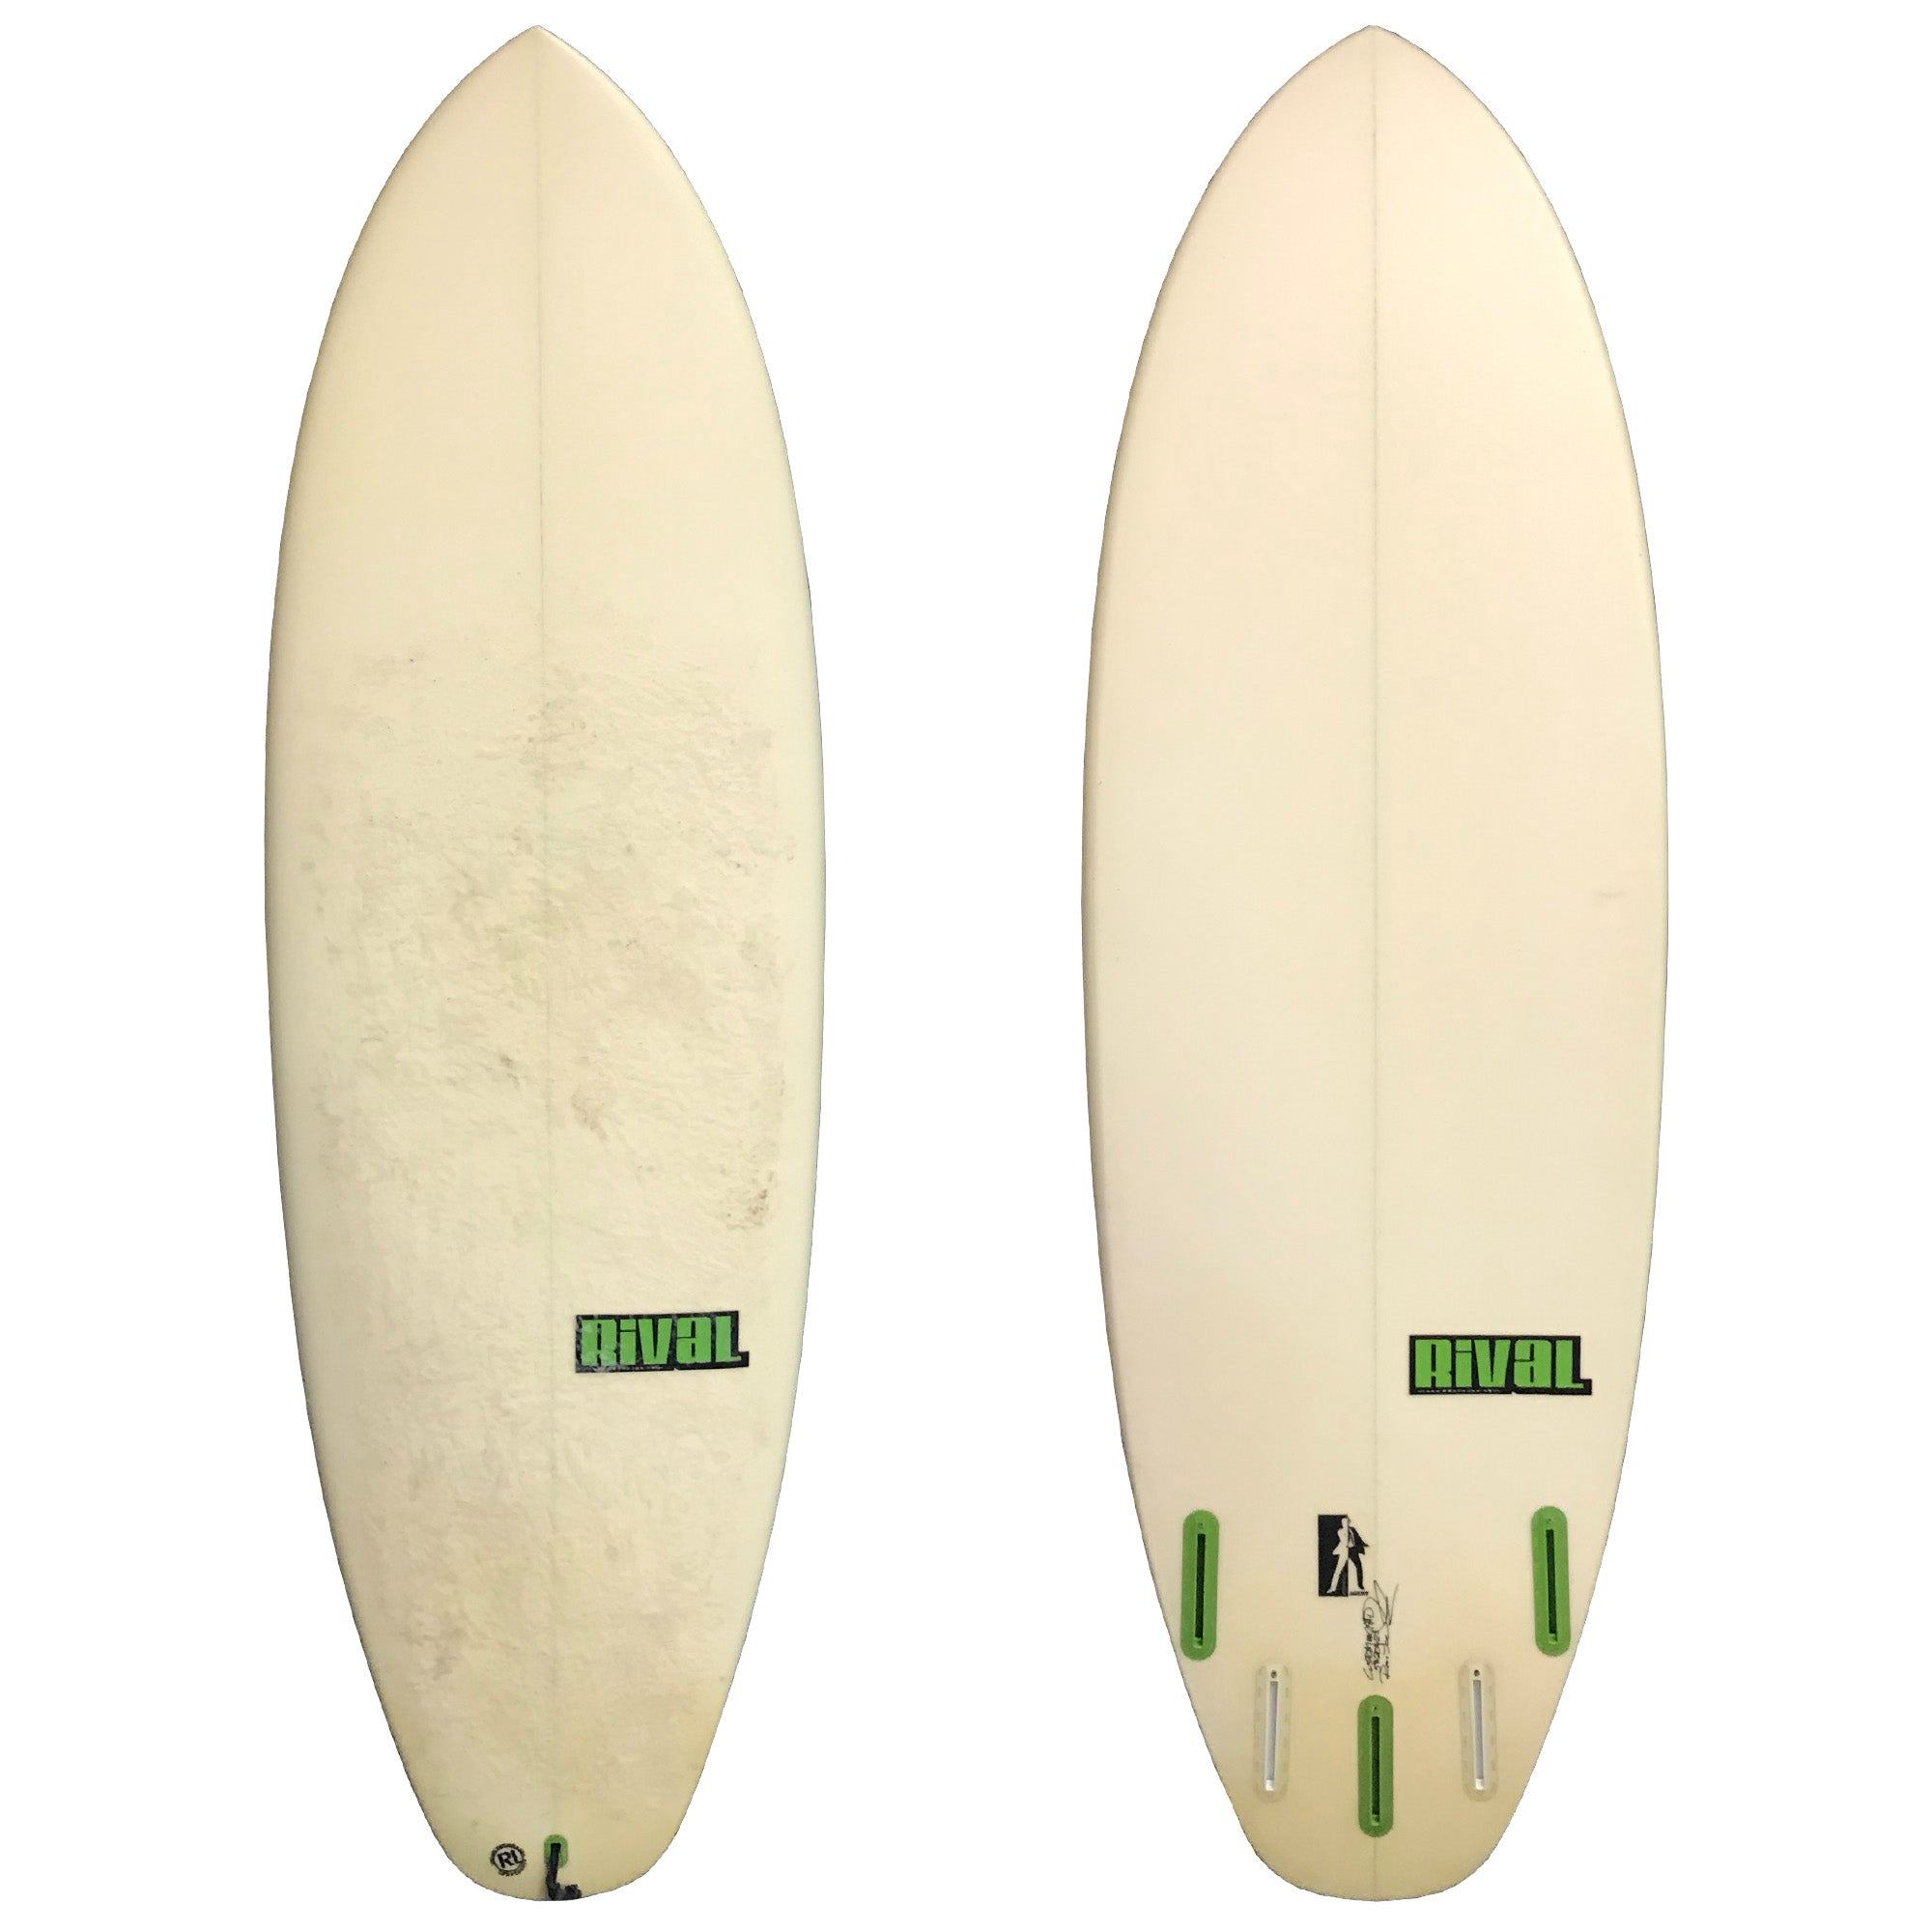 Rival Surfboards Double Agent 5'9 Used Surfboard